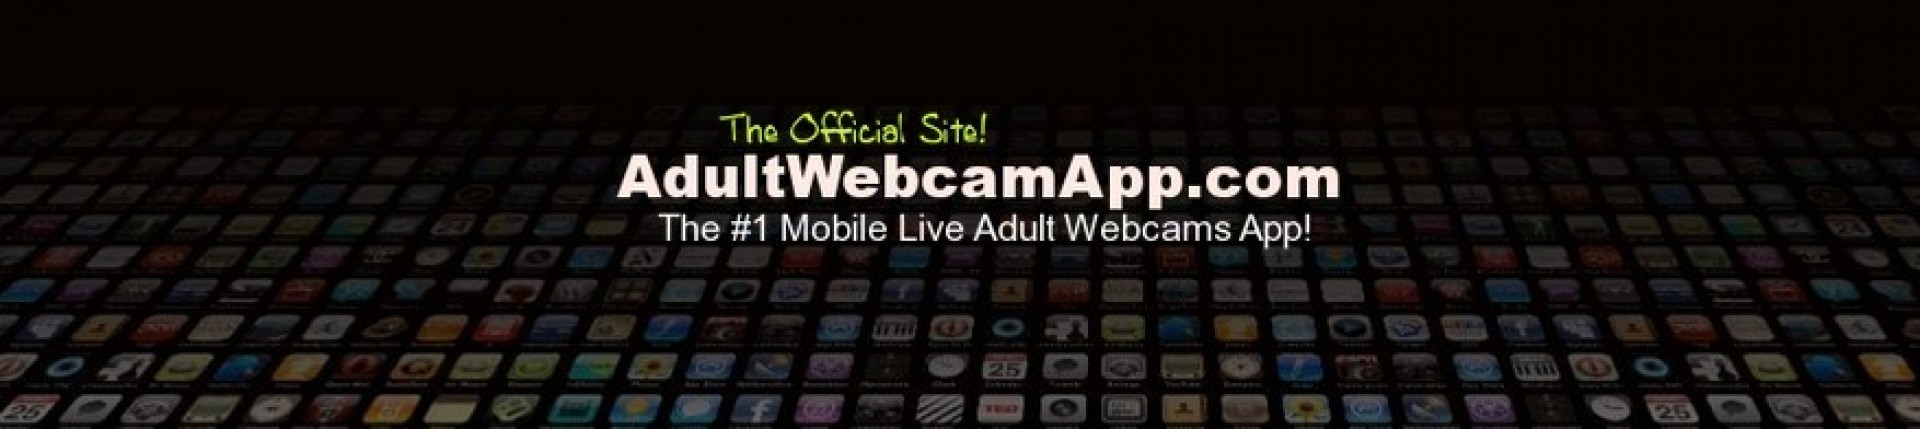 Adult Web Apps 95